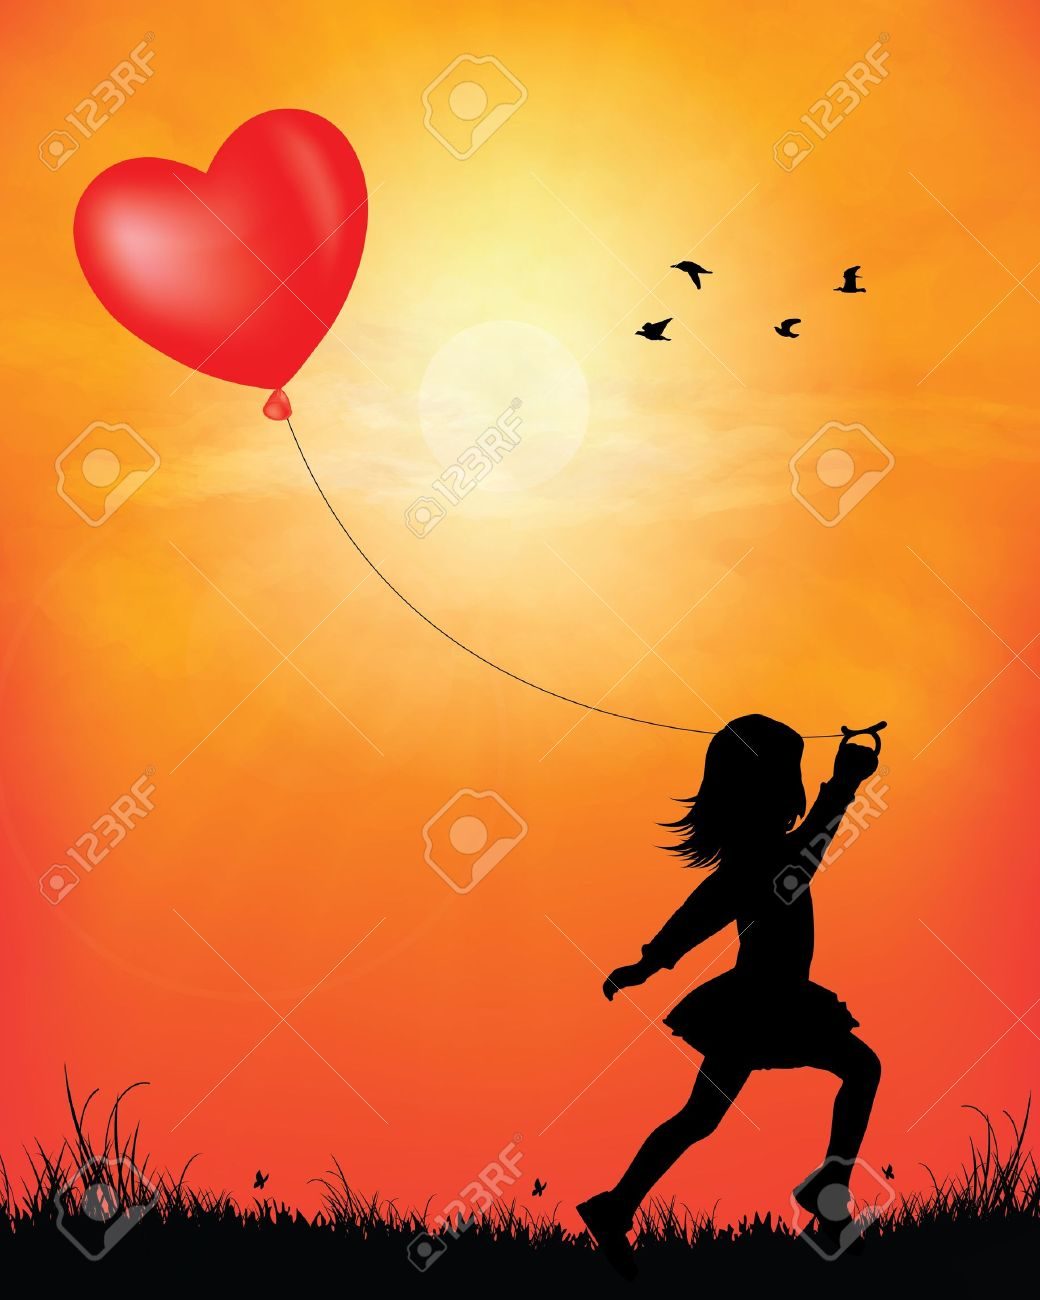 Girl skipping with balloon in sunset background vector illustration Stock Vector - 18732279